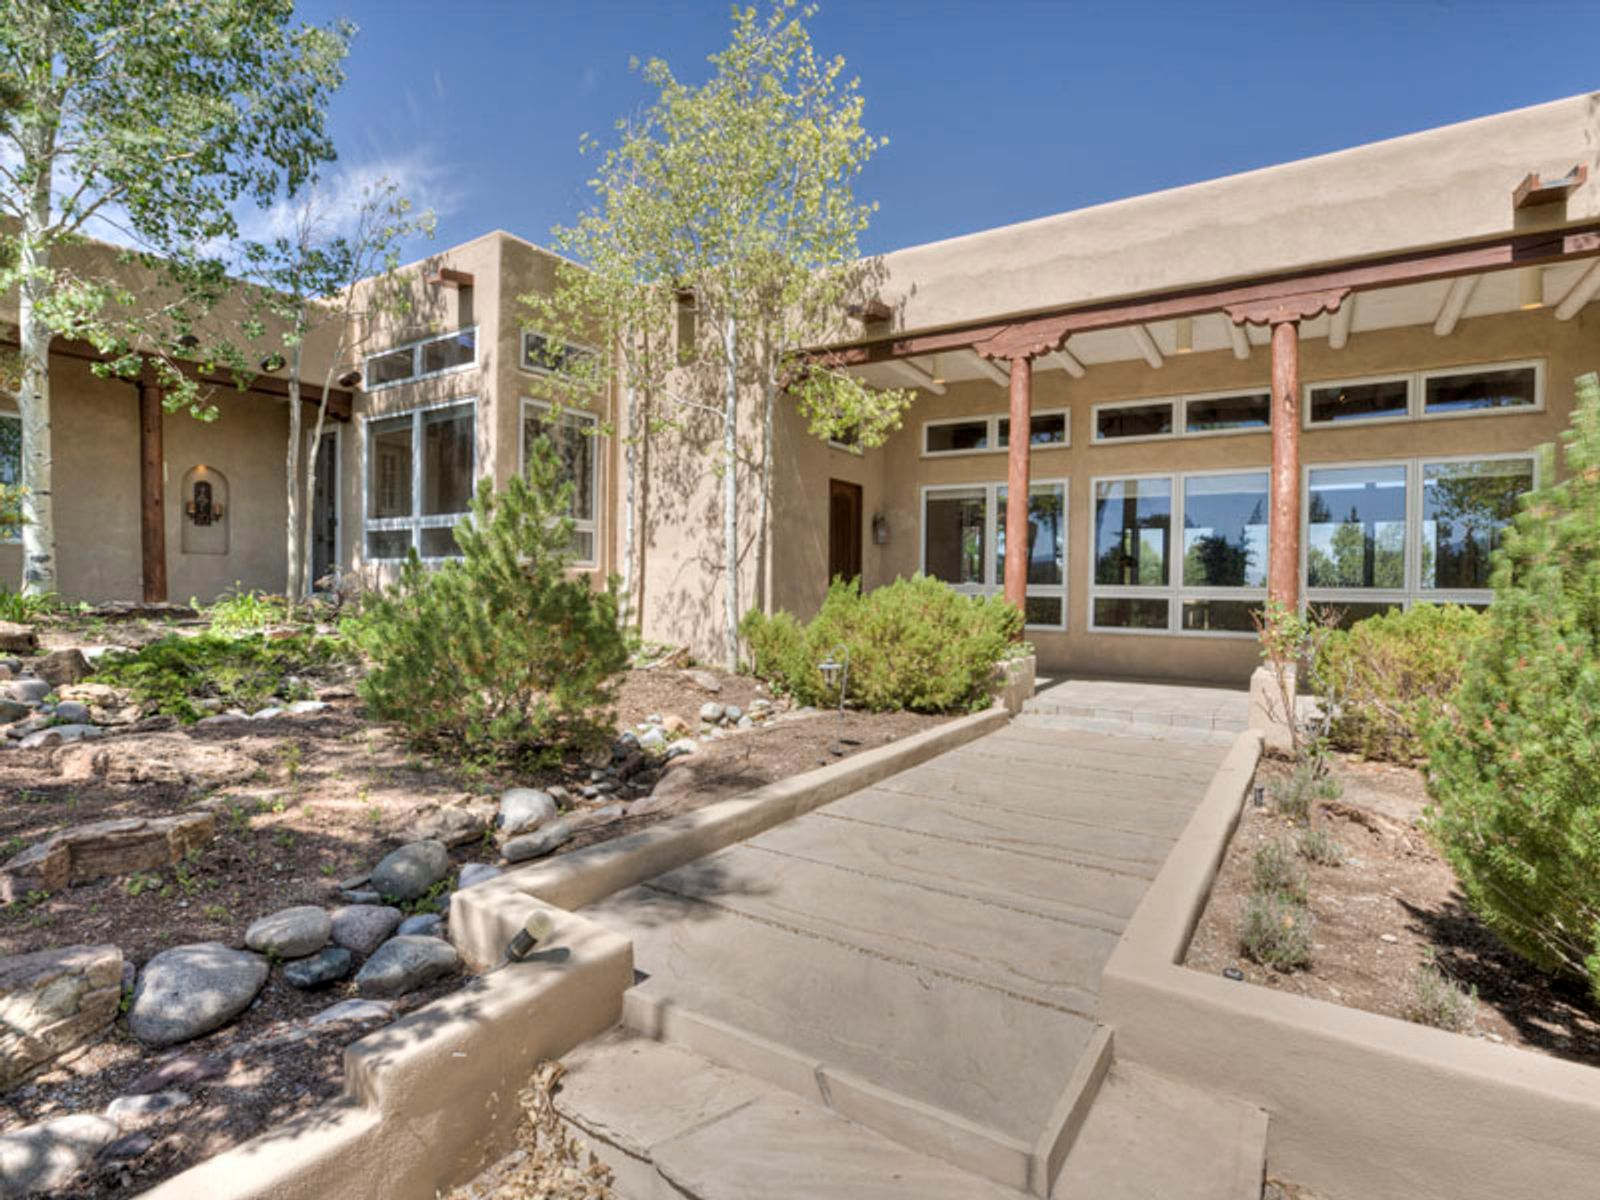 157 Vuelta Maria, Santa Fe NM Single Family Home - Santa Fe Real Estate